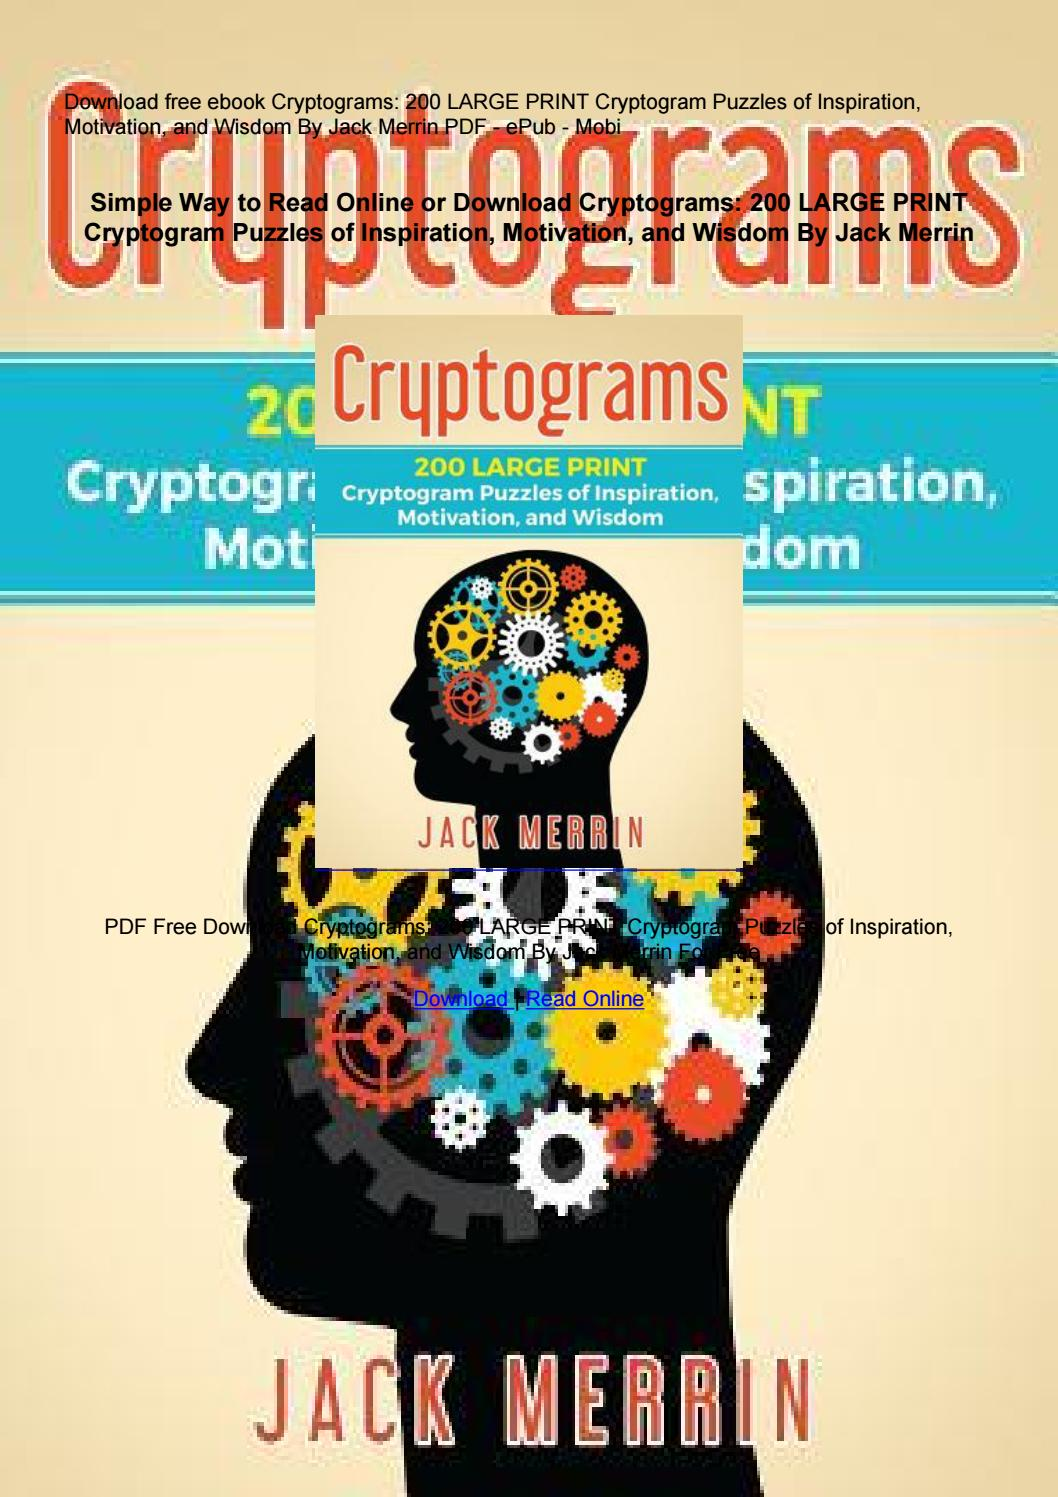 Read Cryptograms 200 Large Print Cryptogram Puzzles Of Inspiration Motivation And Wisdom By Rodneywalker 61 304 Issuu